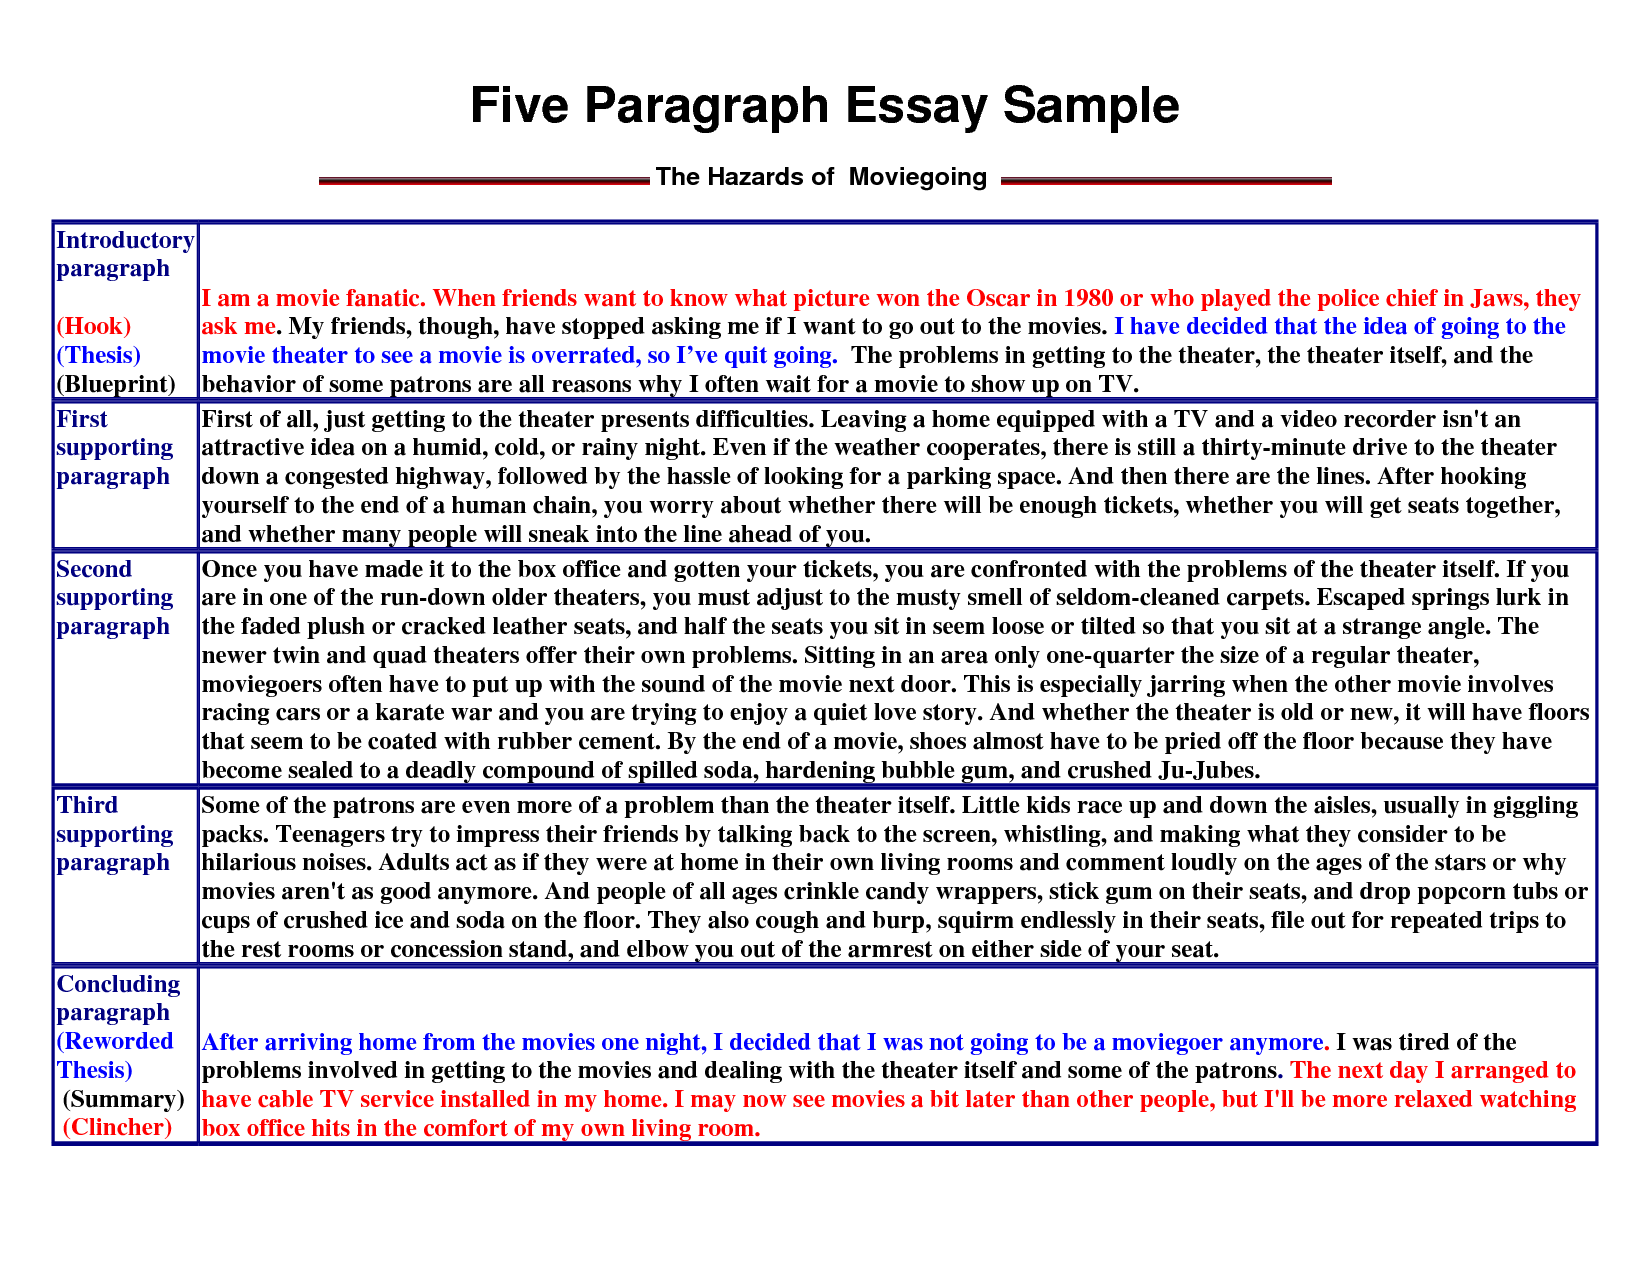 sat act essay tips The redesigned sat, with its optional essay, forced many colleges to revisit policies a major shift has taken place in essay requirements for the sat and act, and there may be additional changes for the classes of 2018 and 2019 of the 360 colleges and universities in the compass 360, fewer than 10%.